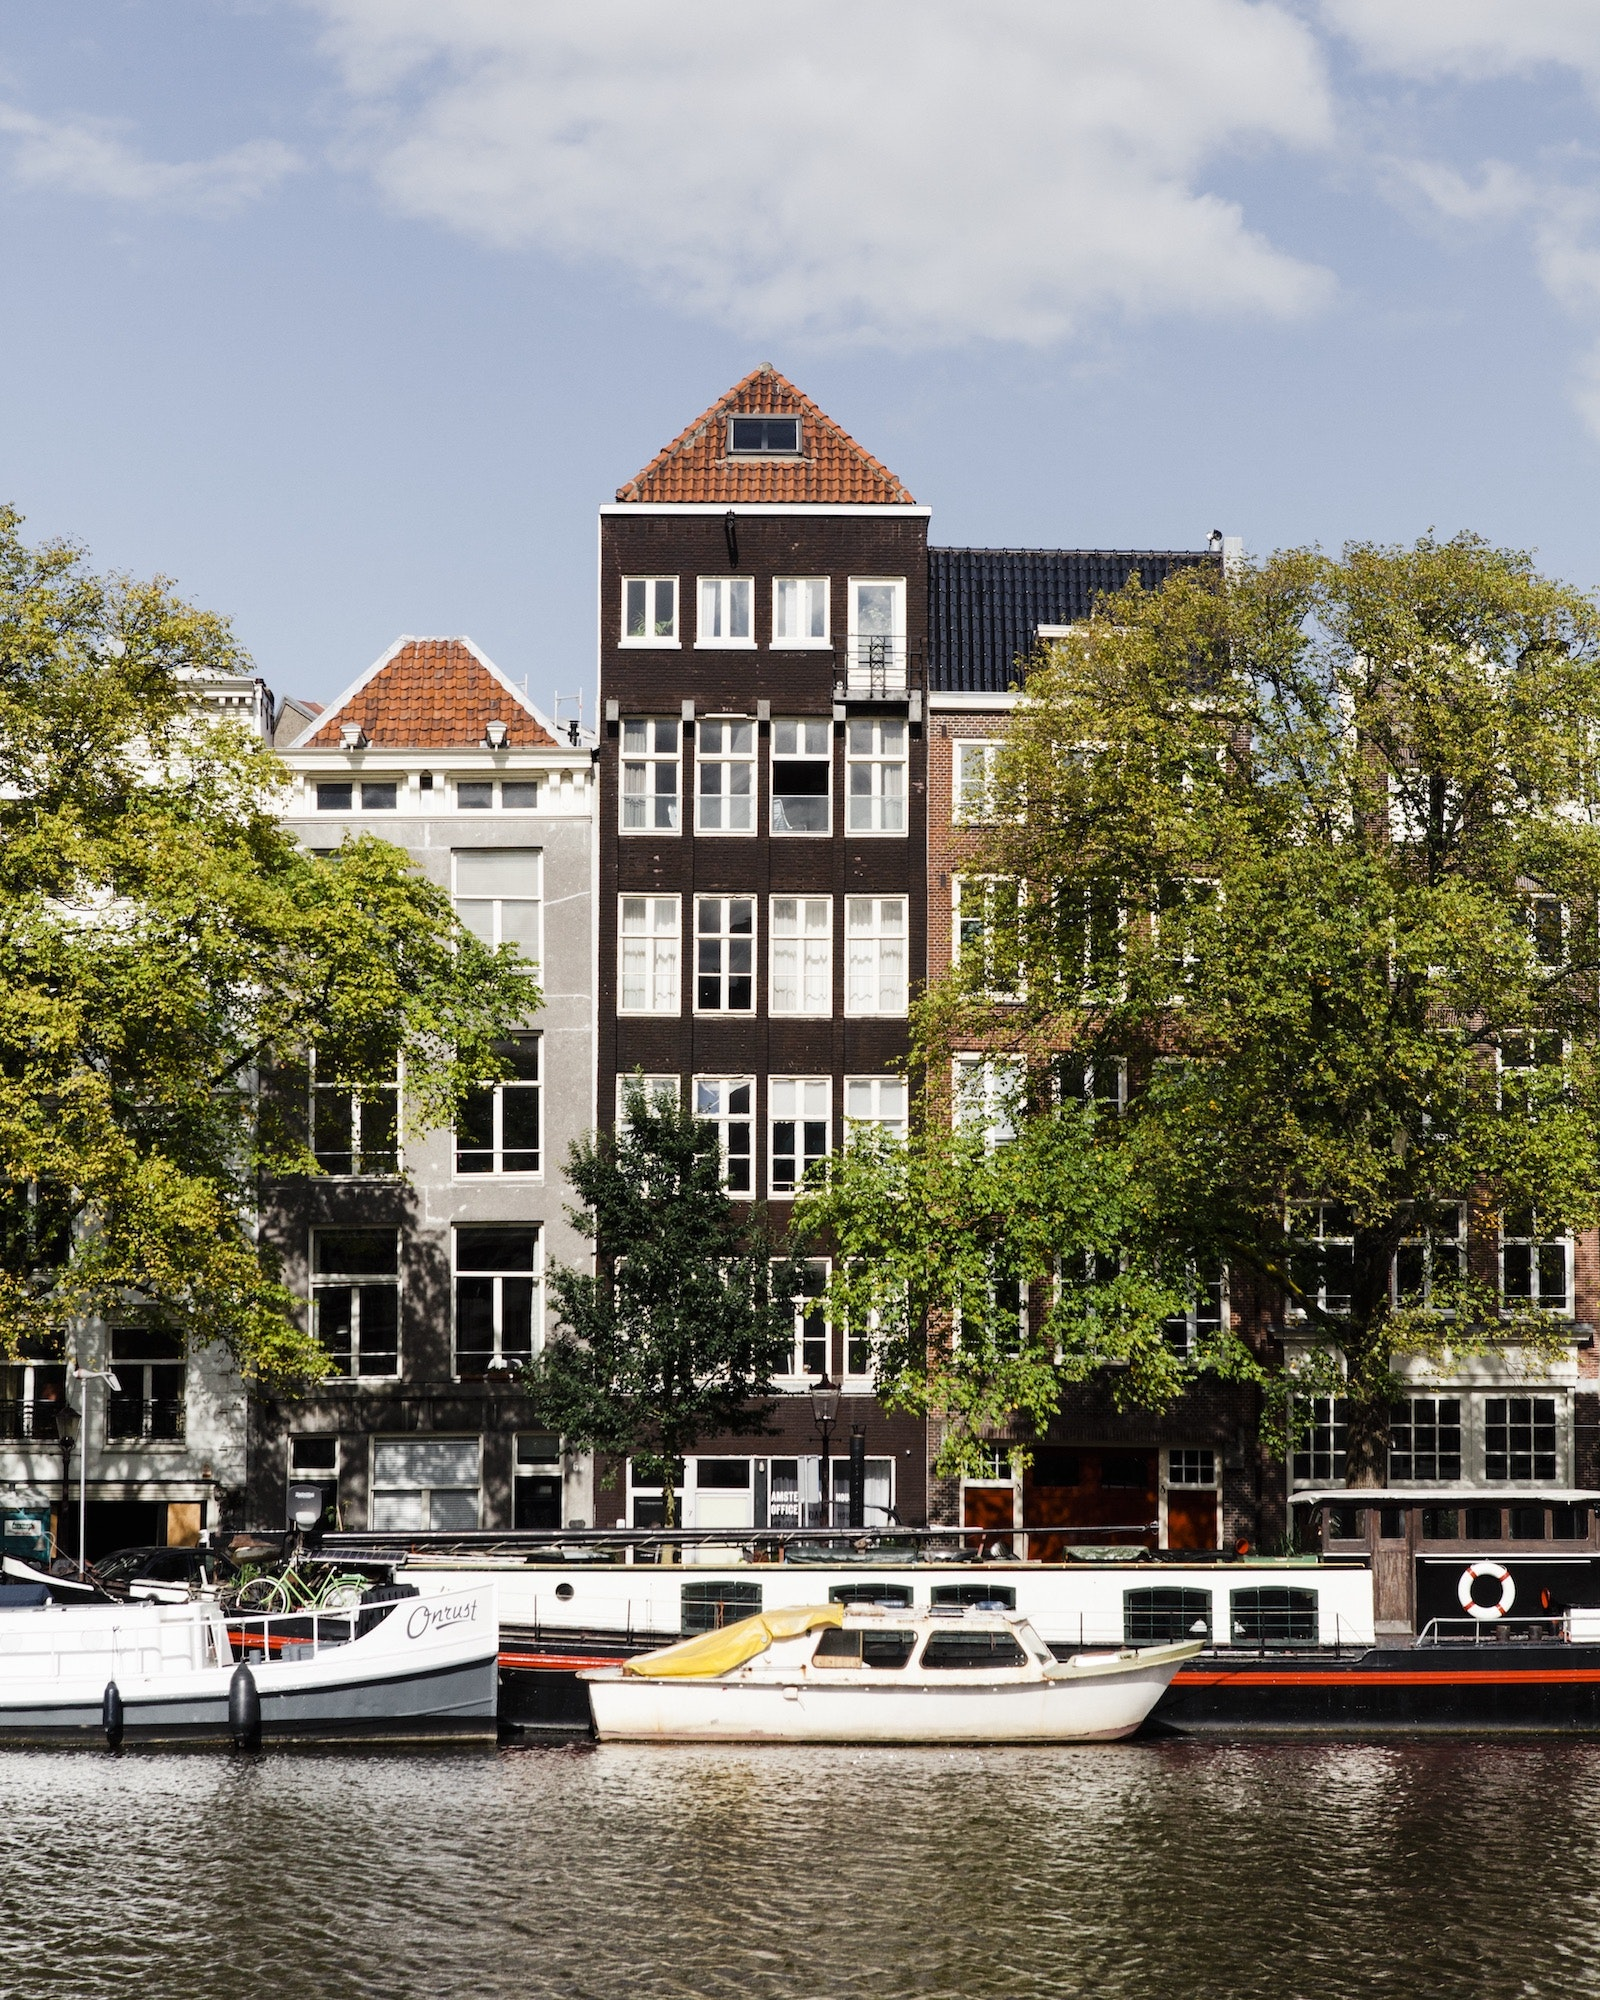 Tall, narrow houses—most built during the Netherlands' 17th-century Golden Age—line Amsterdam's canals.